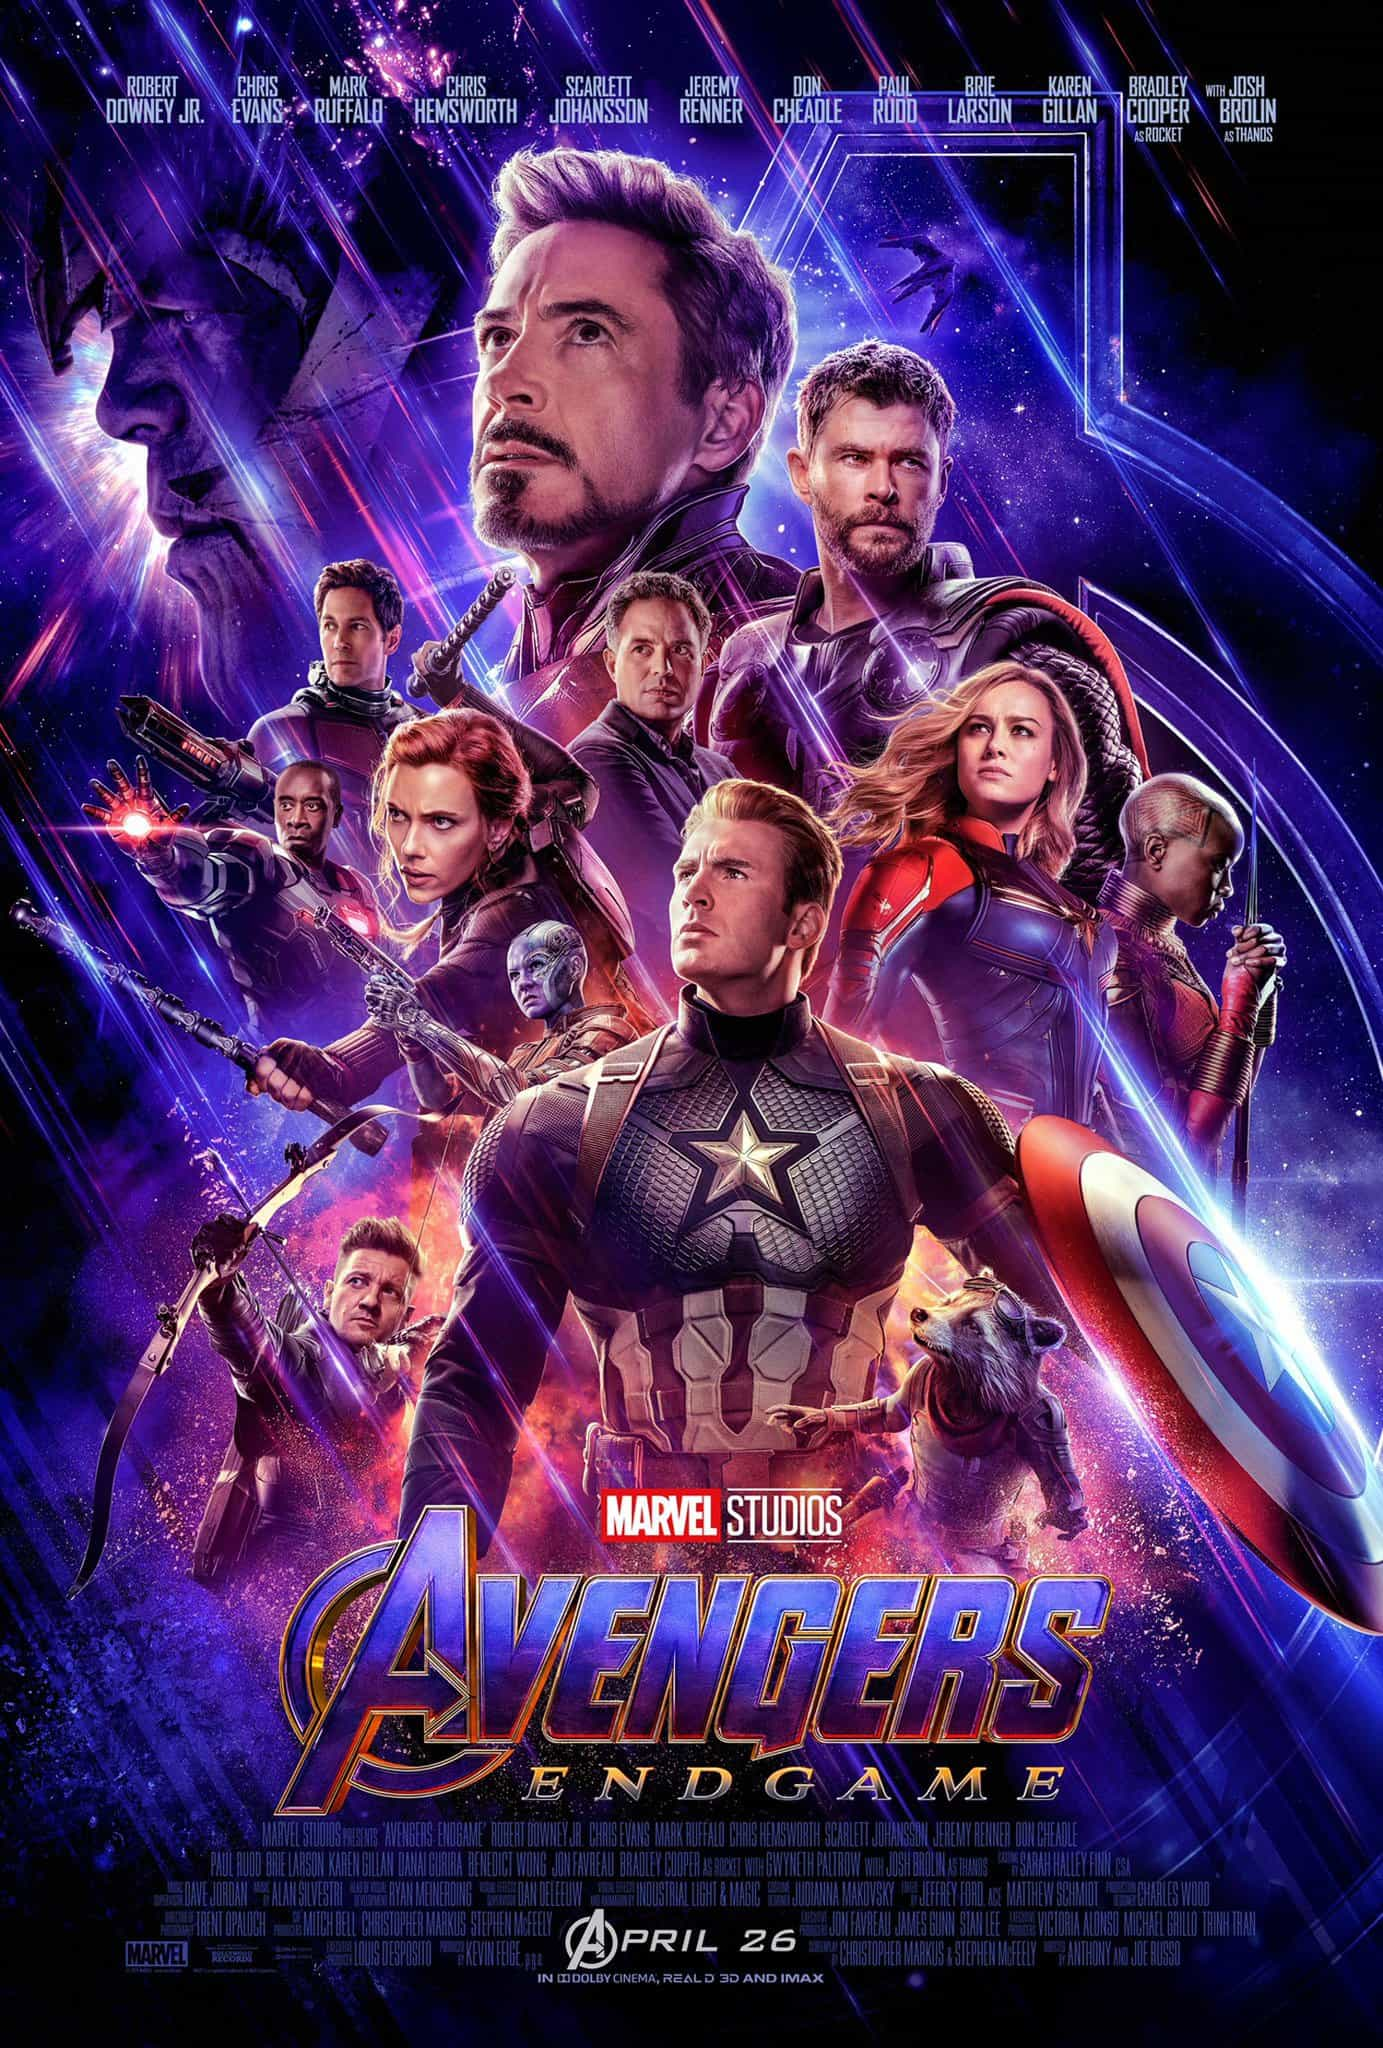 First trailer and poster for Avengers 4, officially titled Avengers Endgame, new release date April 26 2019